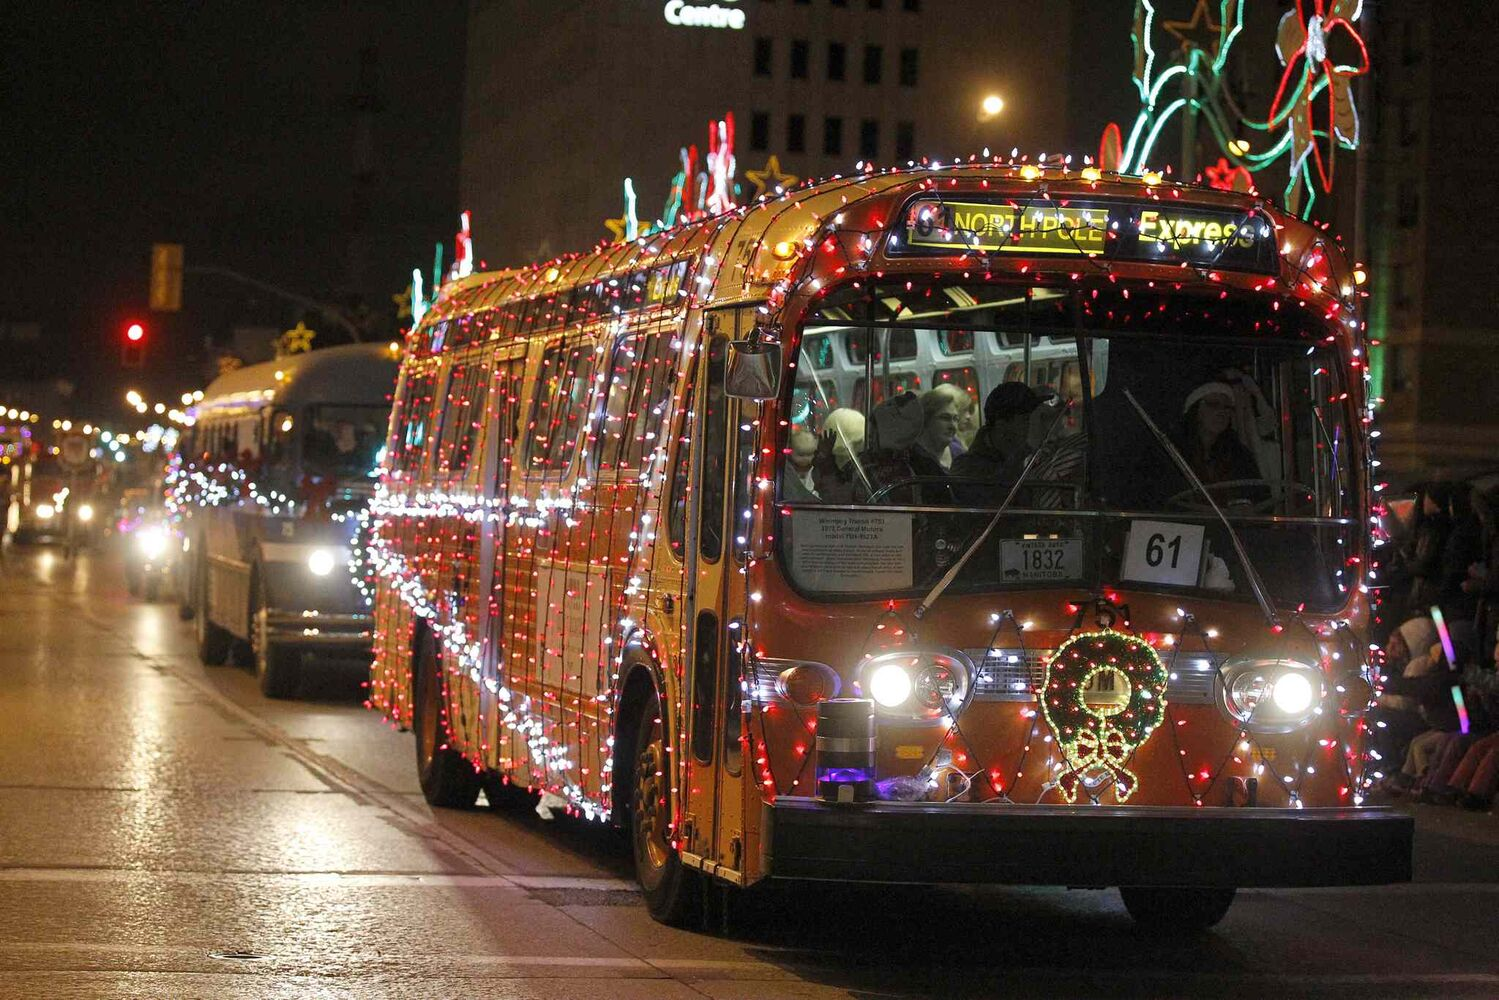 An old Winnipeg Transit bus is covered in lights as part of the parade. (TREVOR HAGAN / WINNIPEG FREE PRESS)